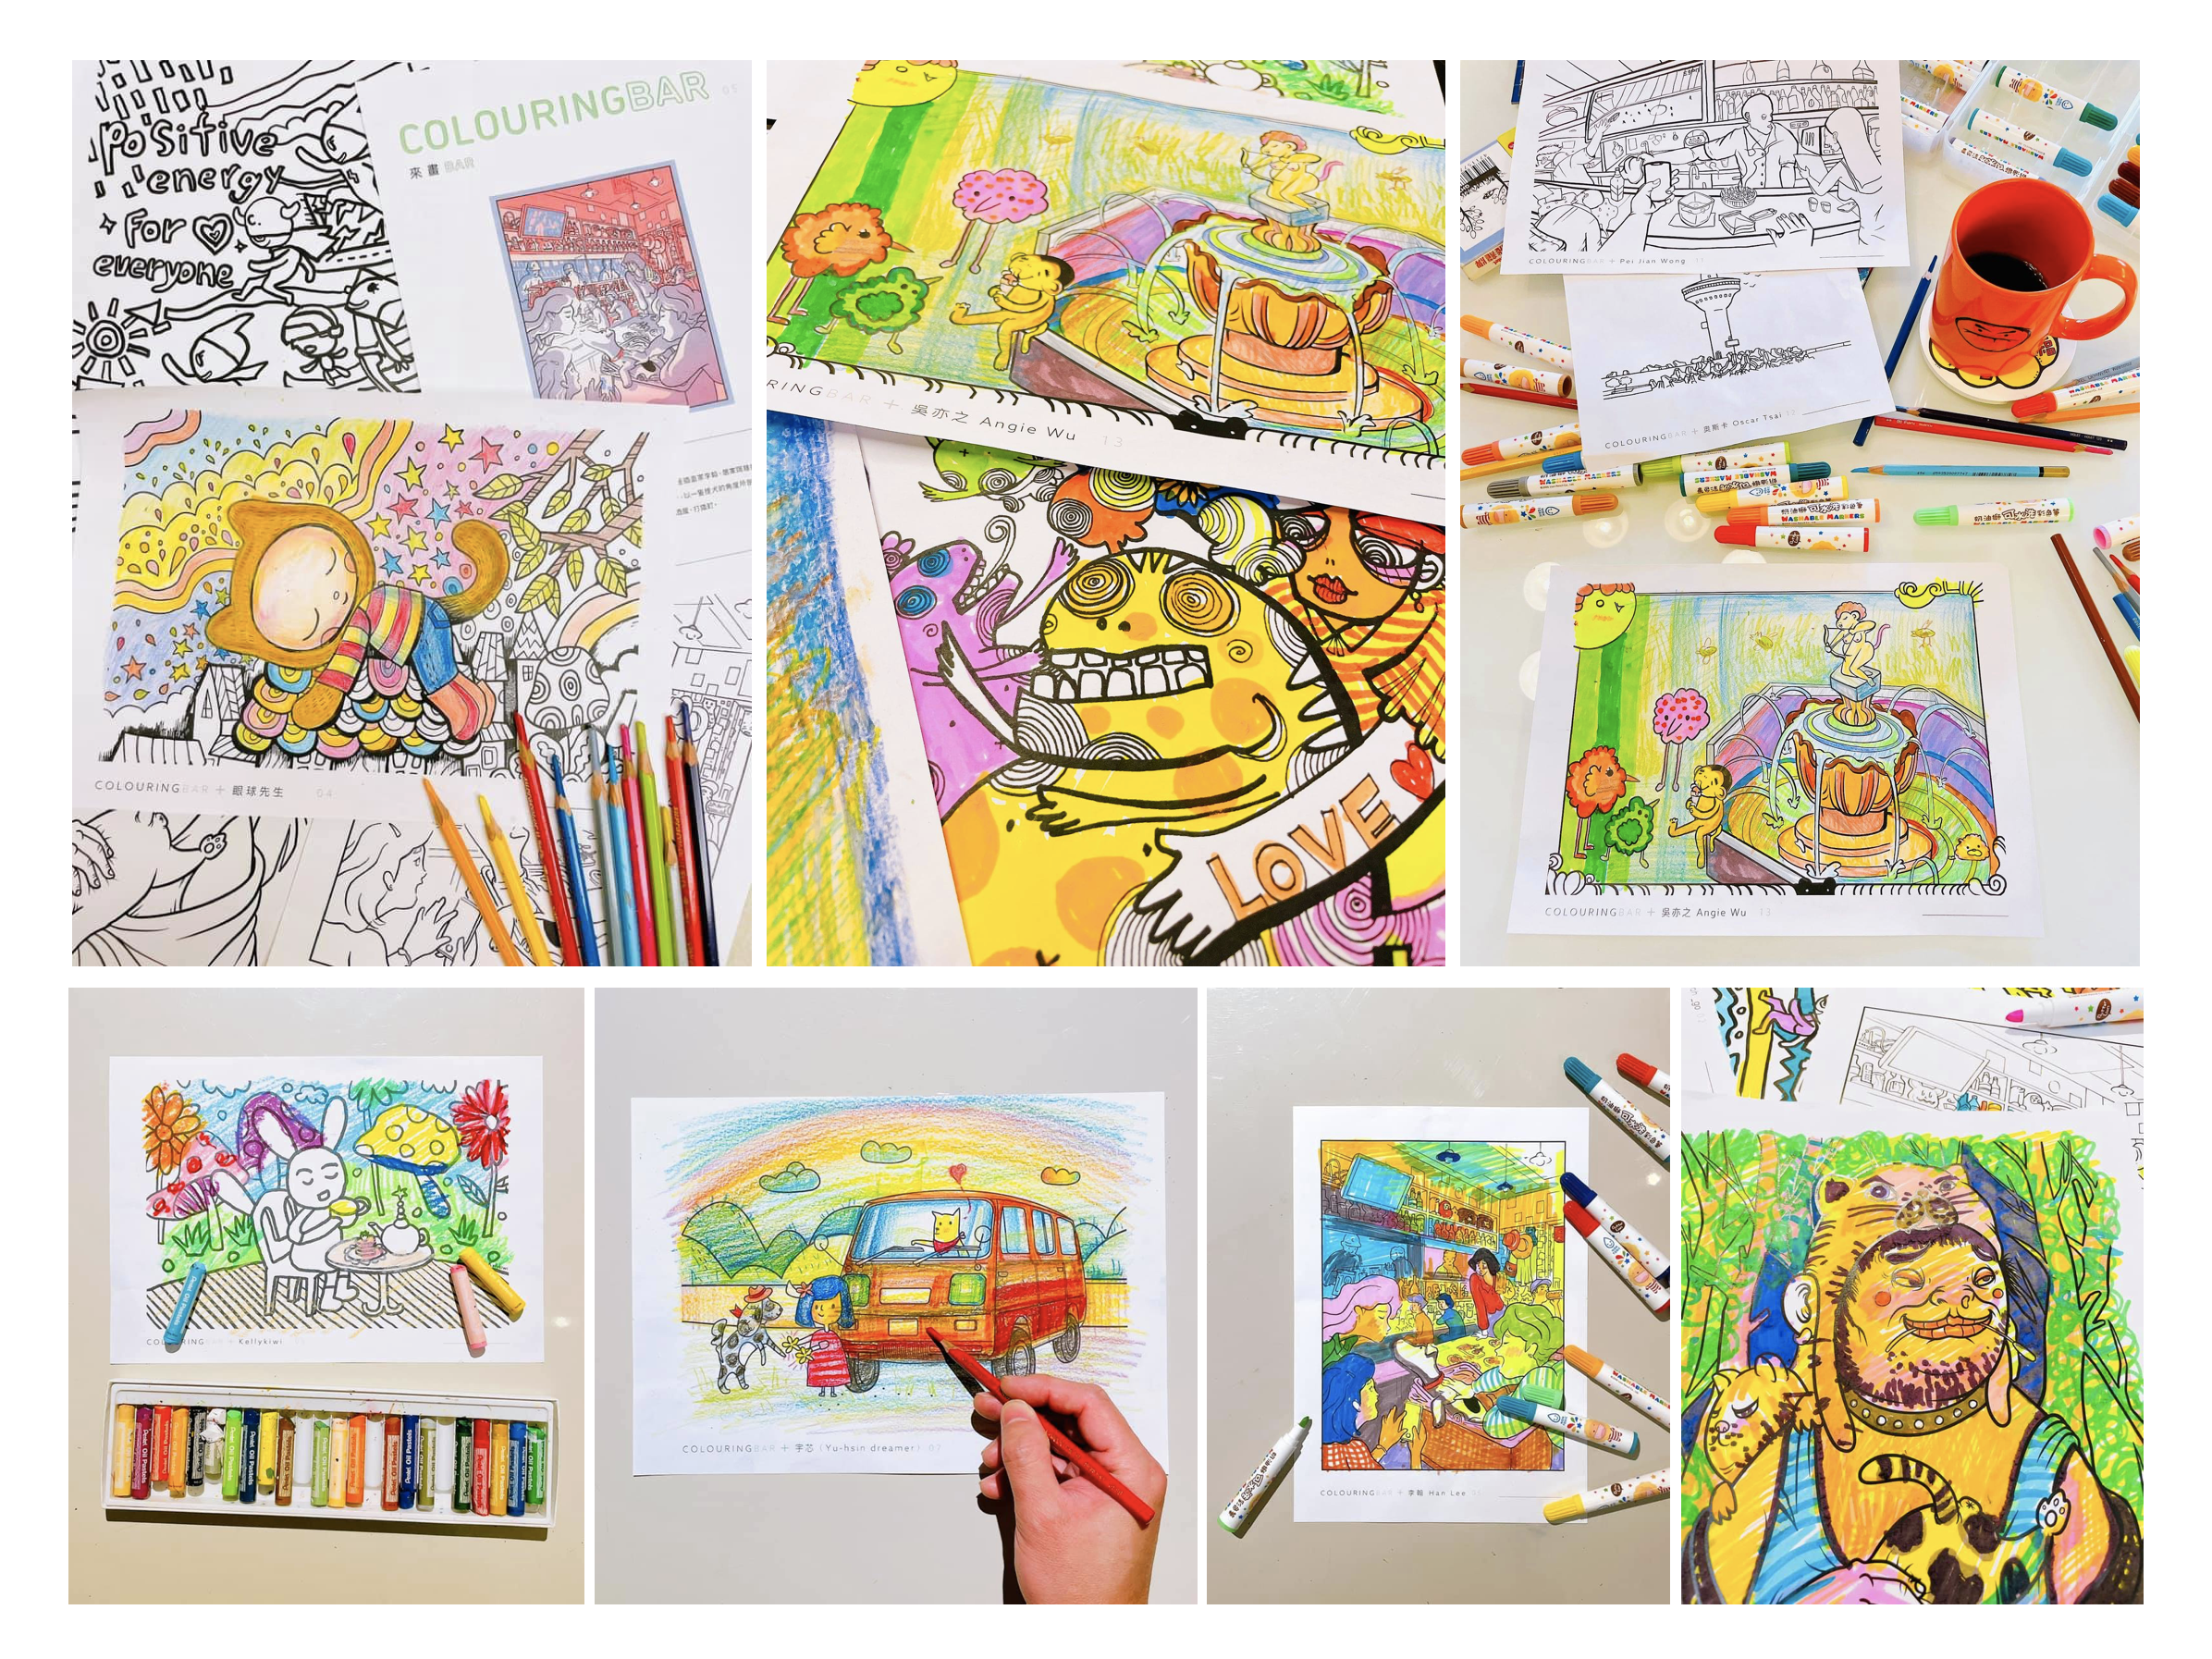 Selection of different coloured in images in a collage